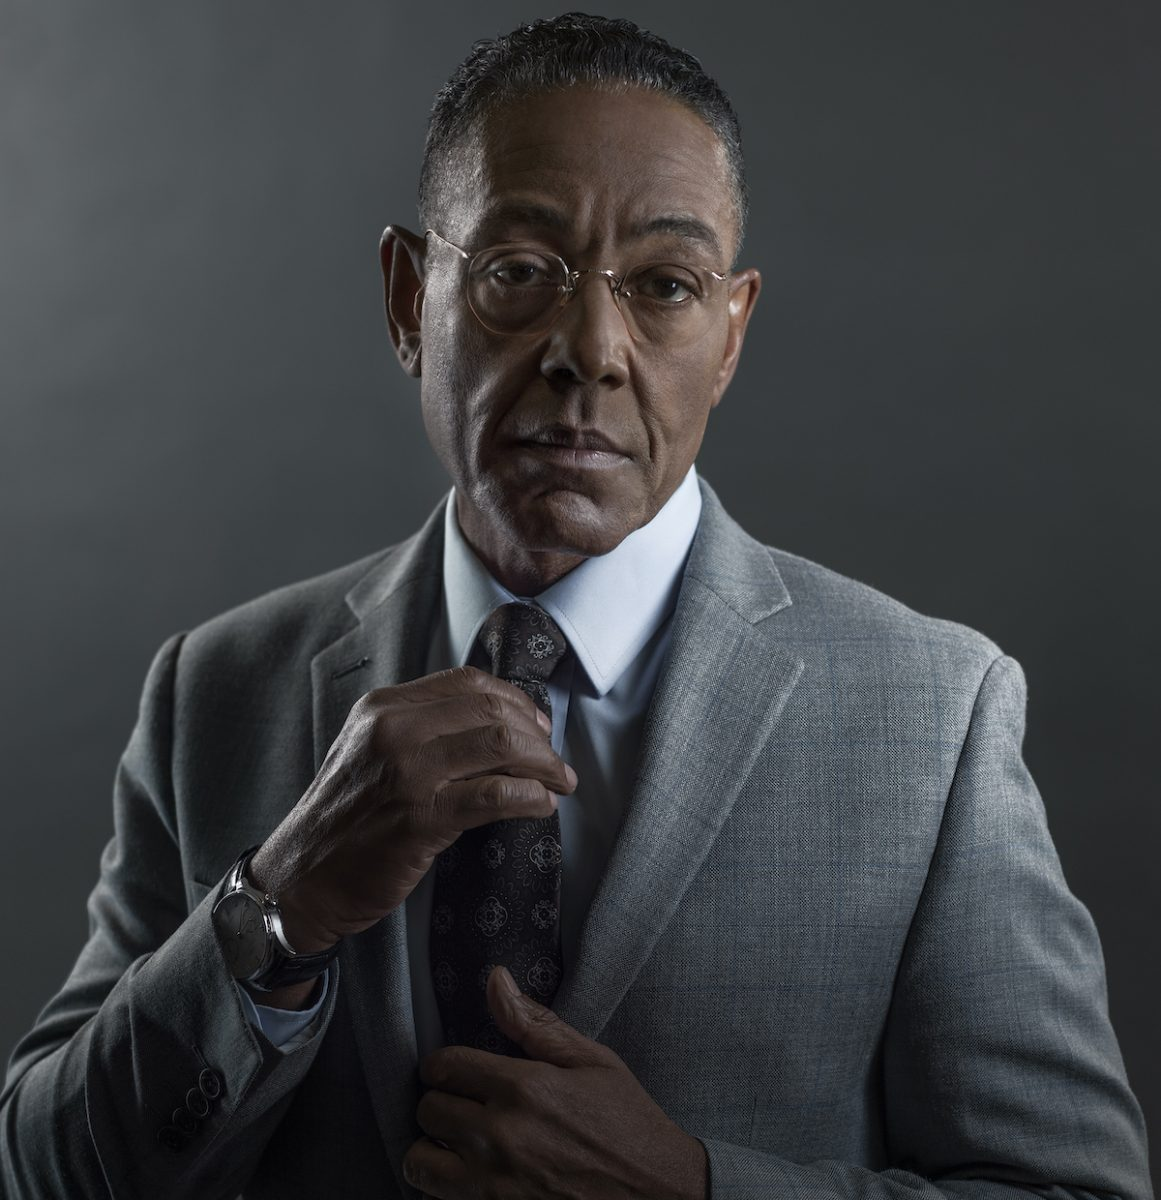 Giancarlo Esposito in Breaking Bad